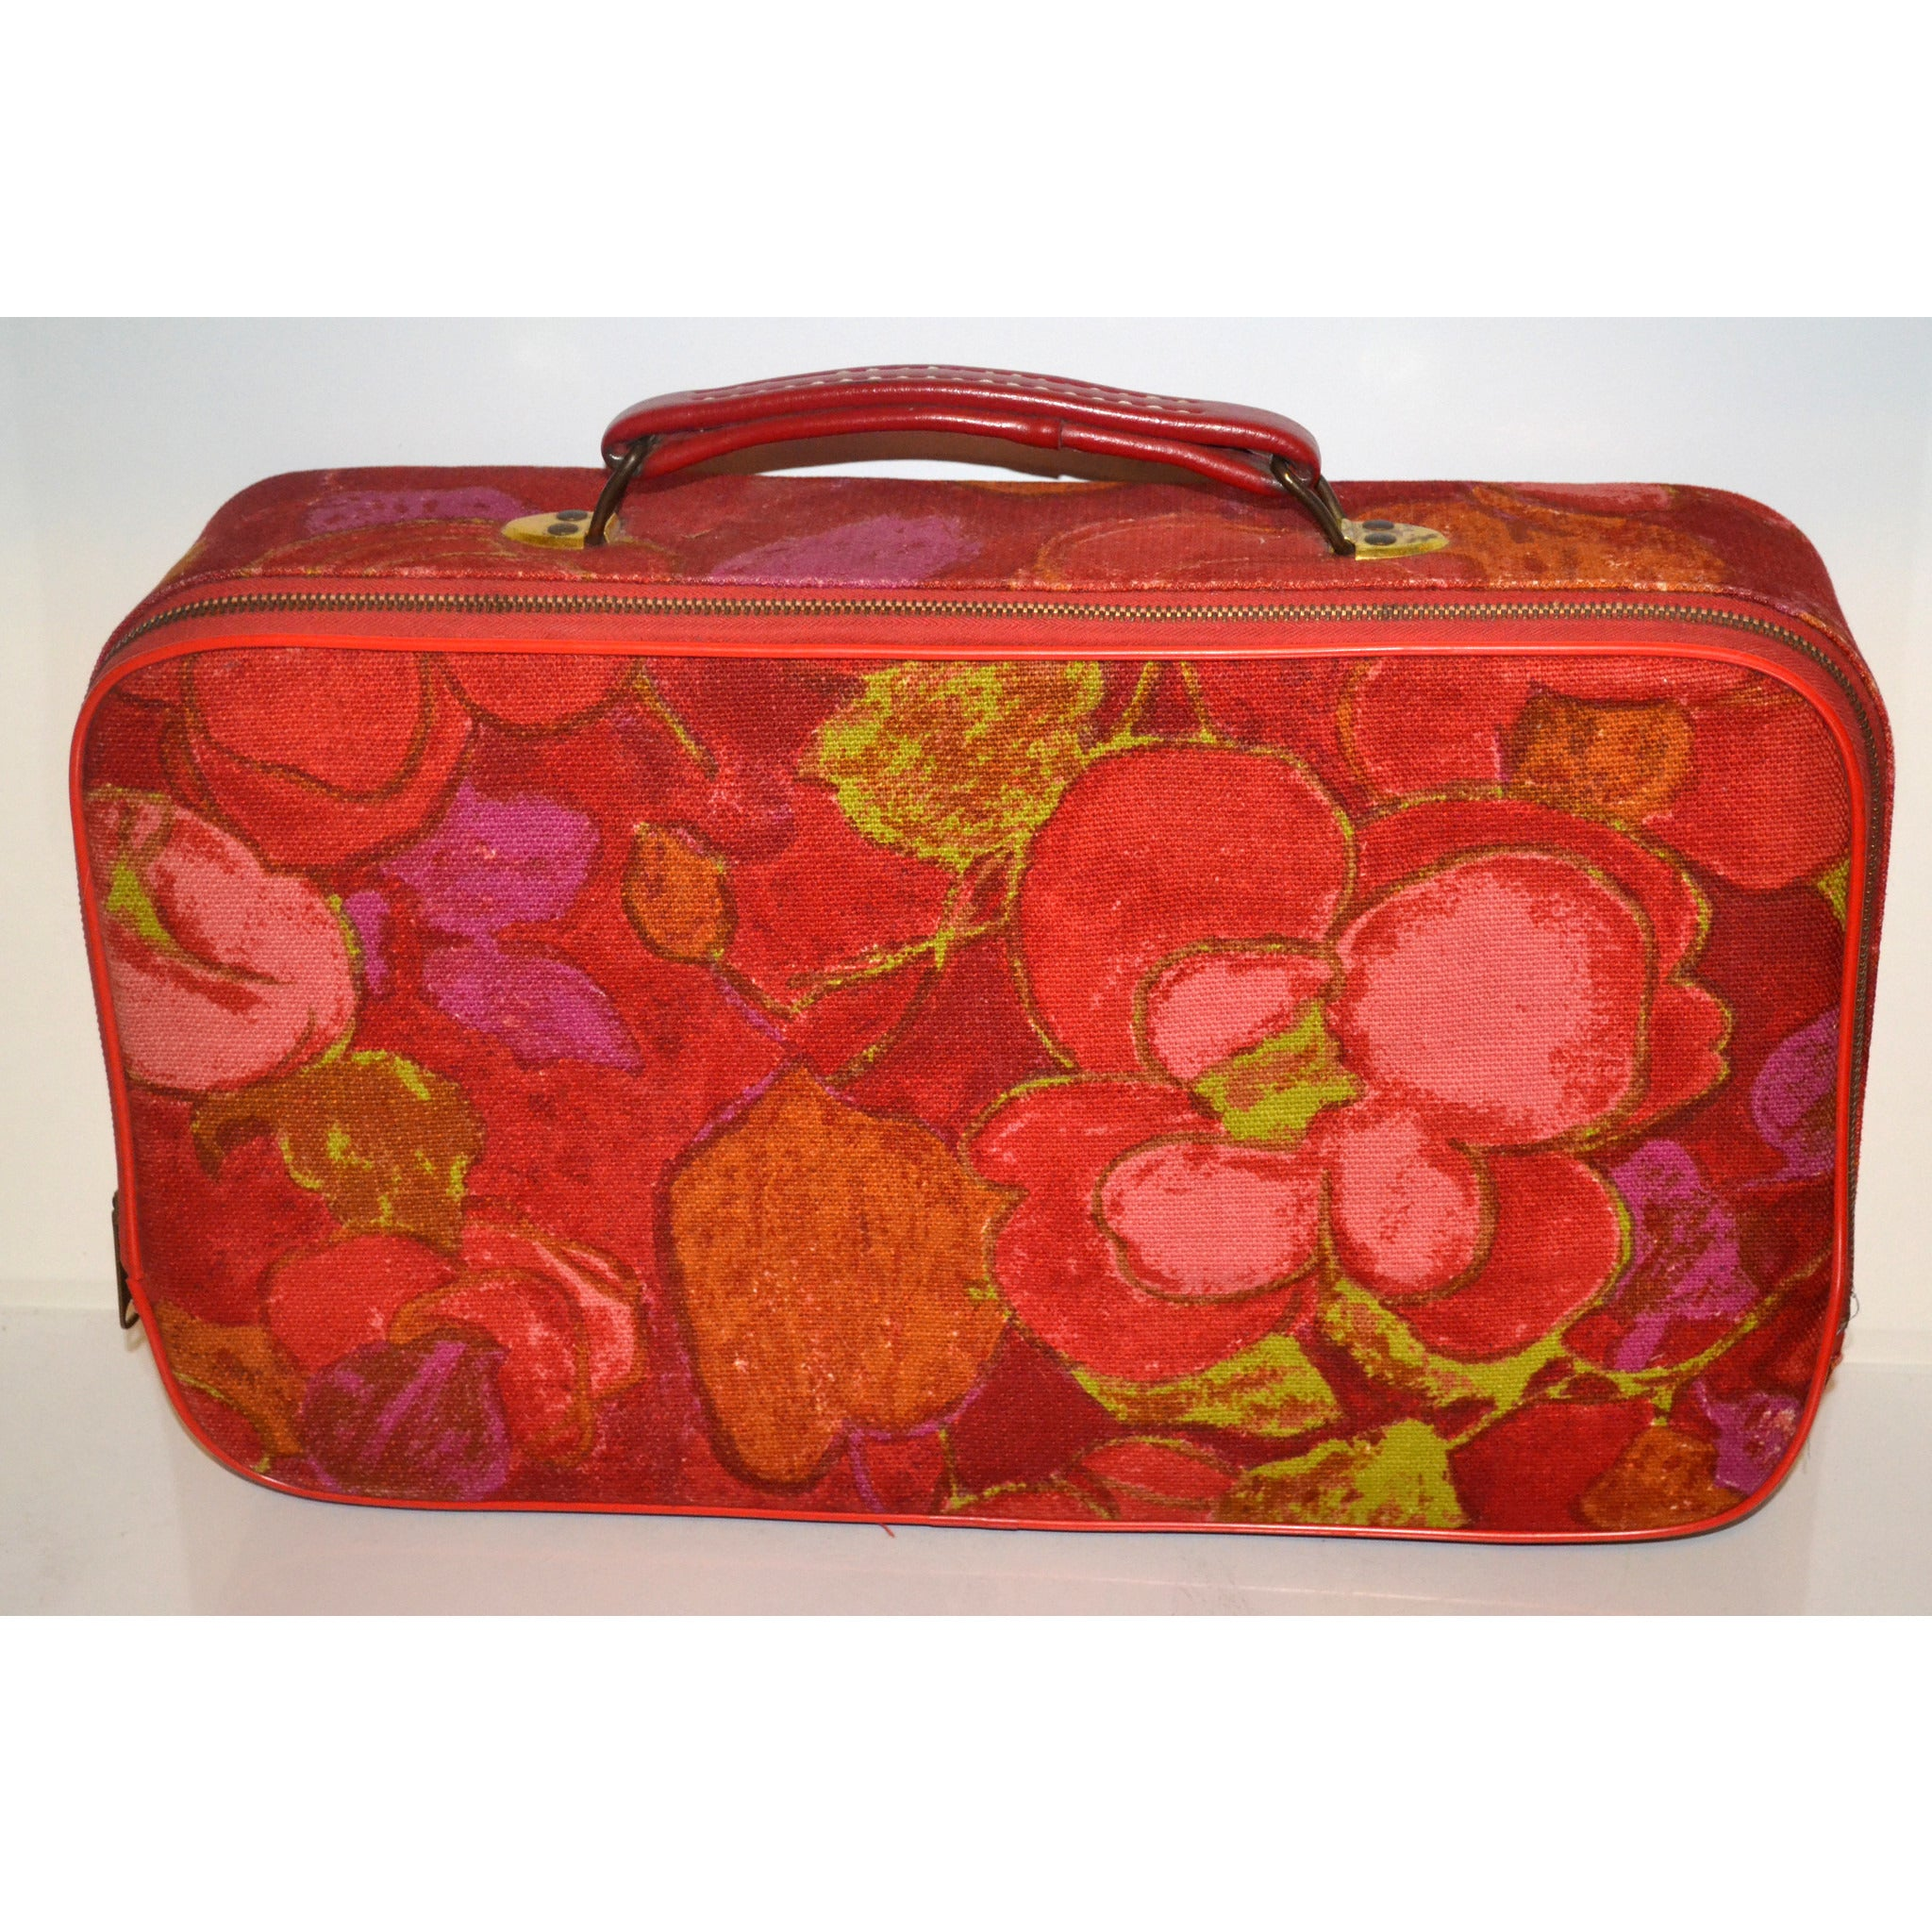 Vintage Red Floral CarryOn Suitcase Luggage